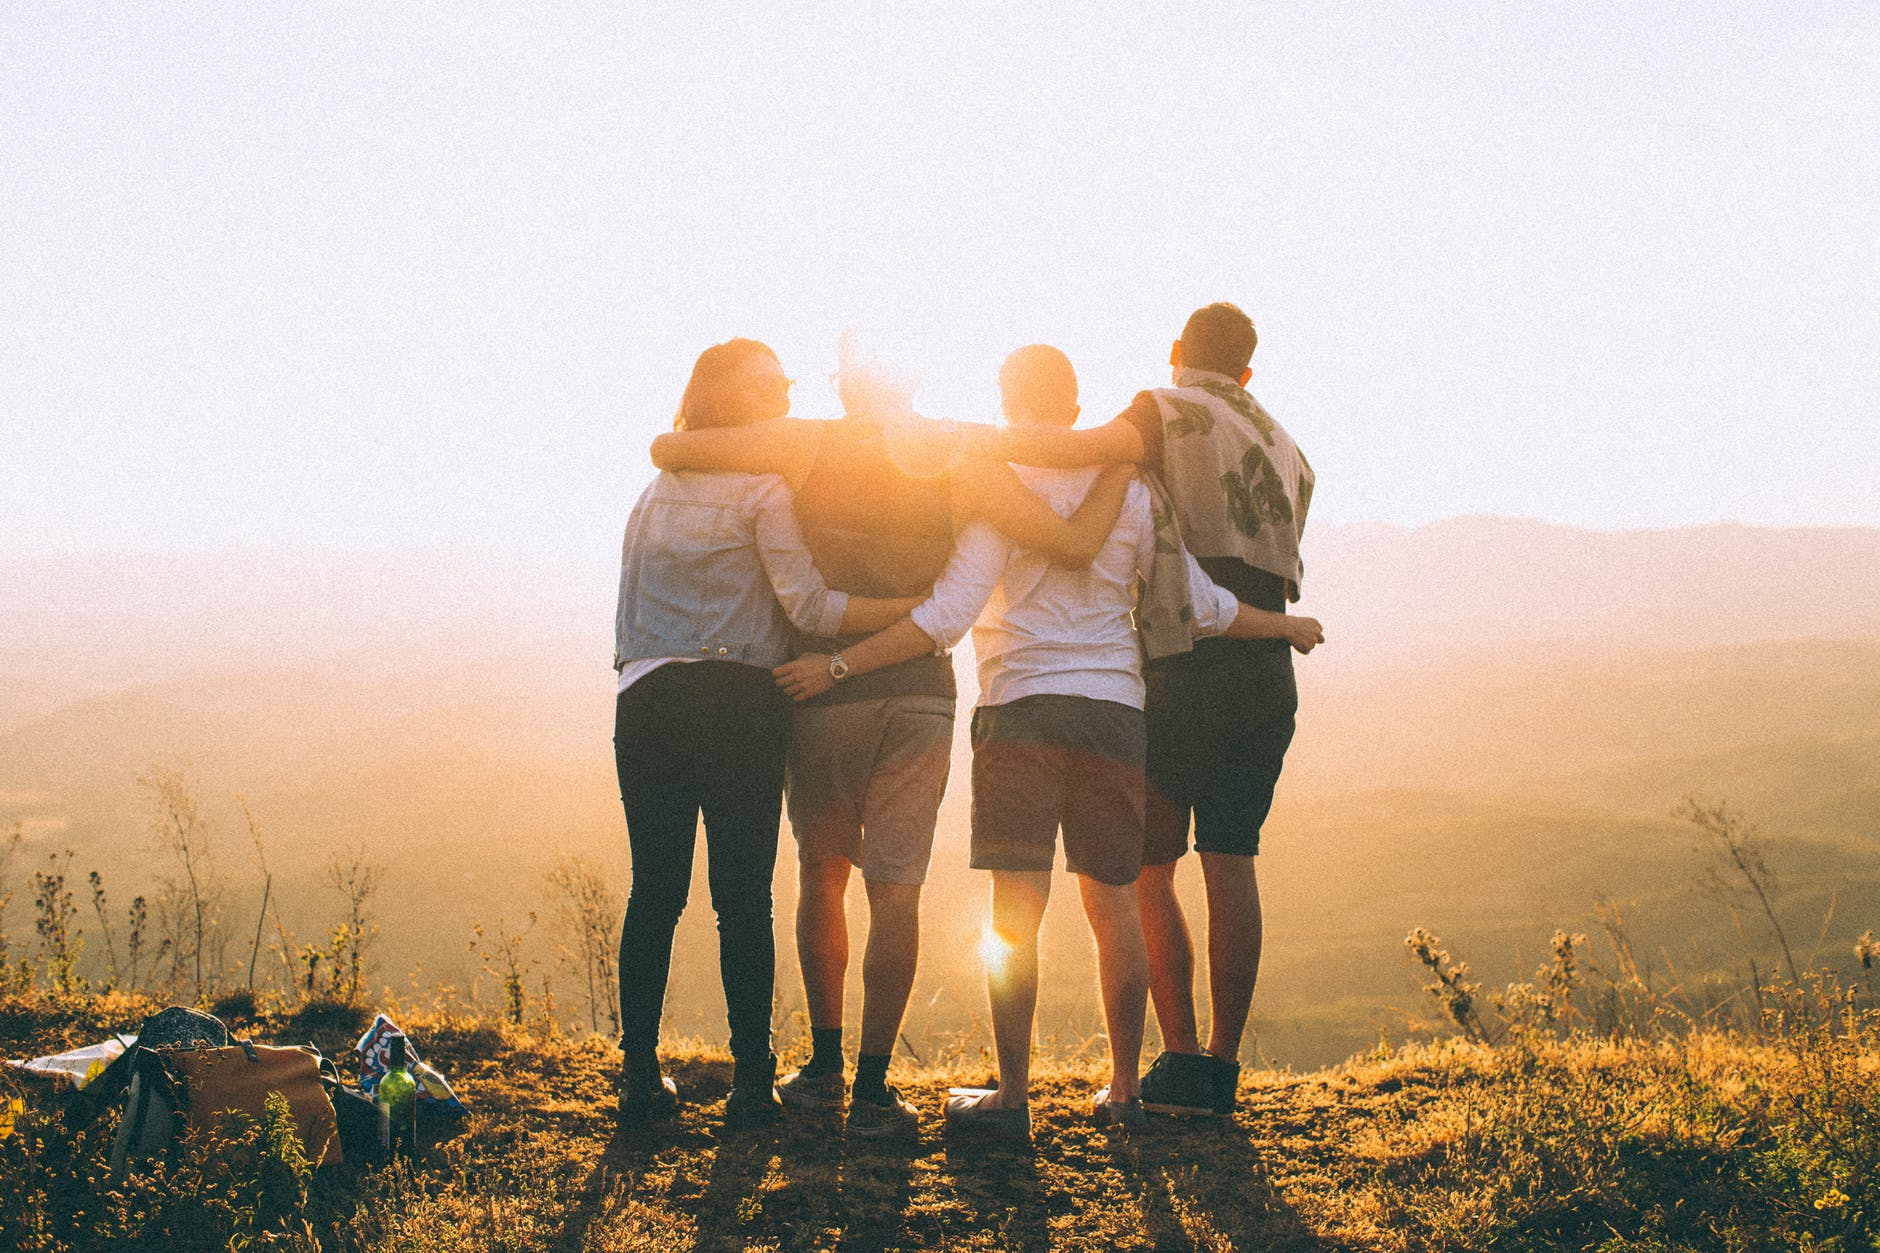 4 friends standing and looking at the sunset